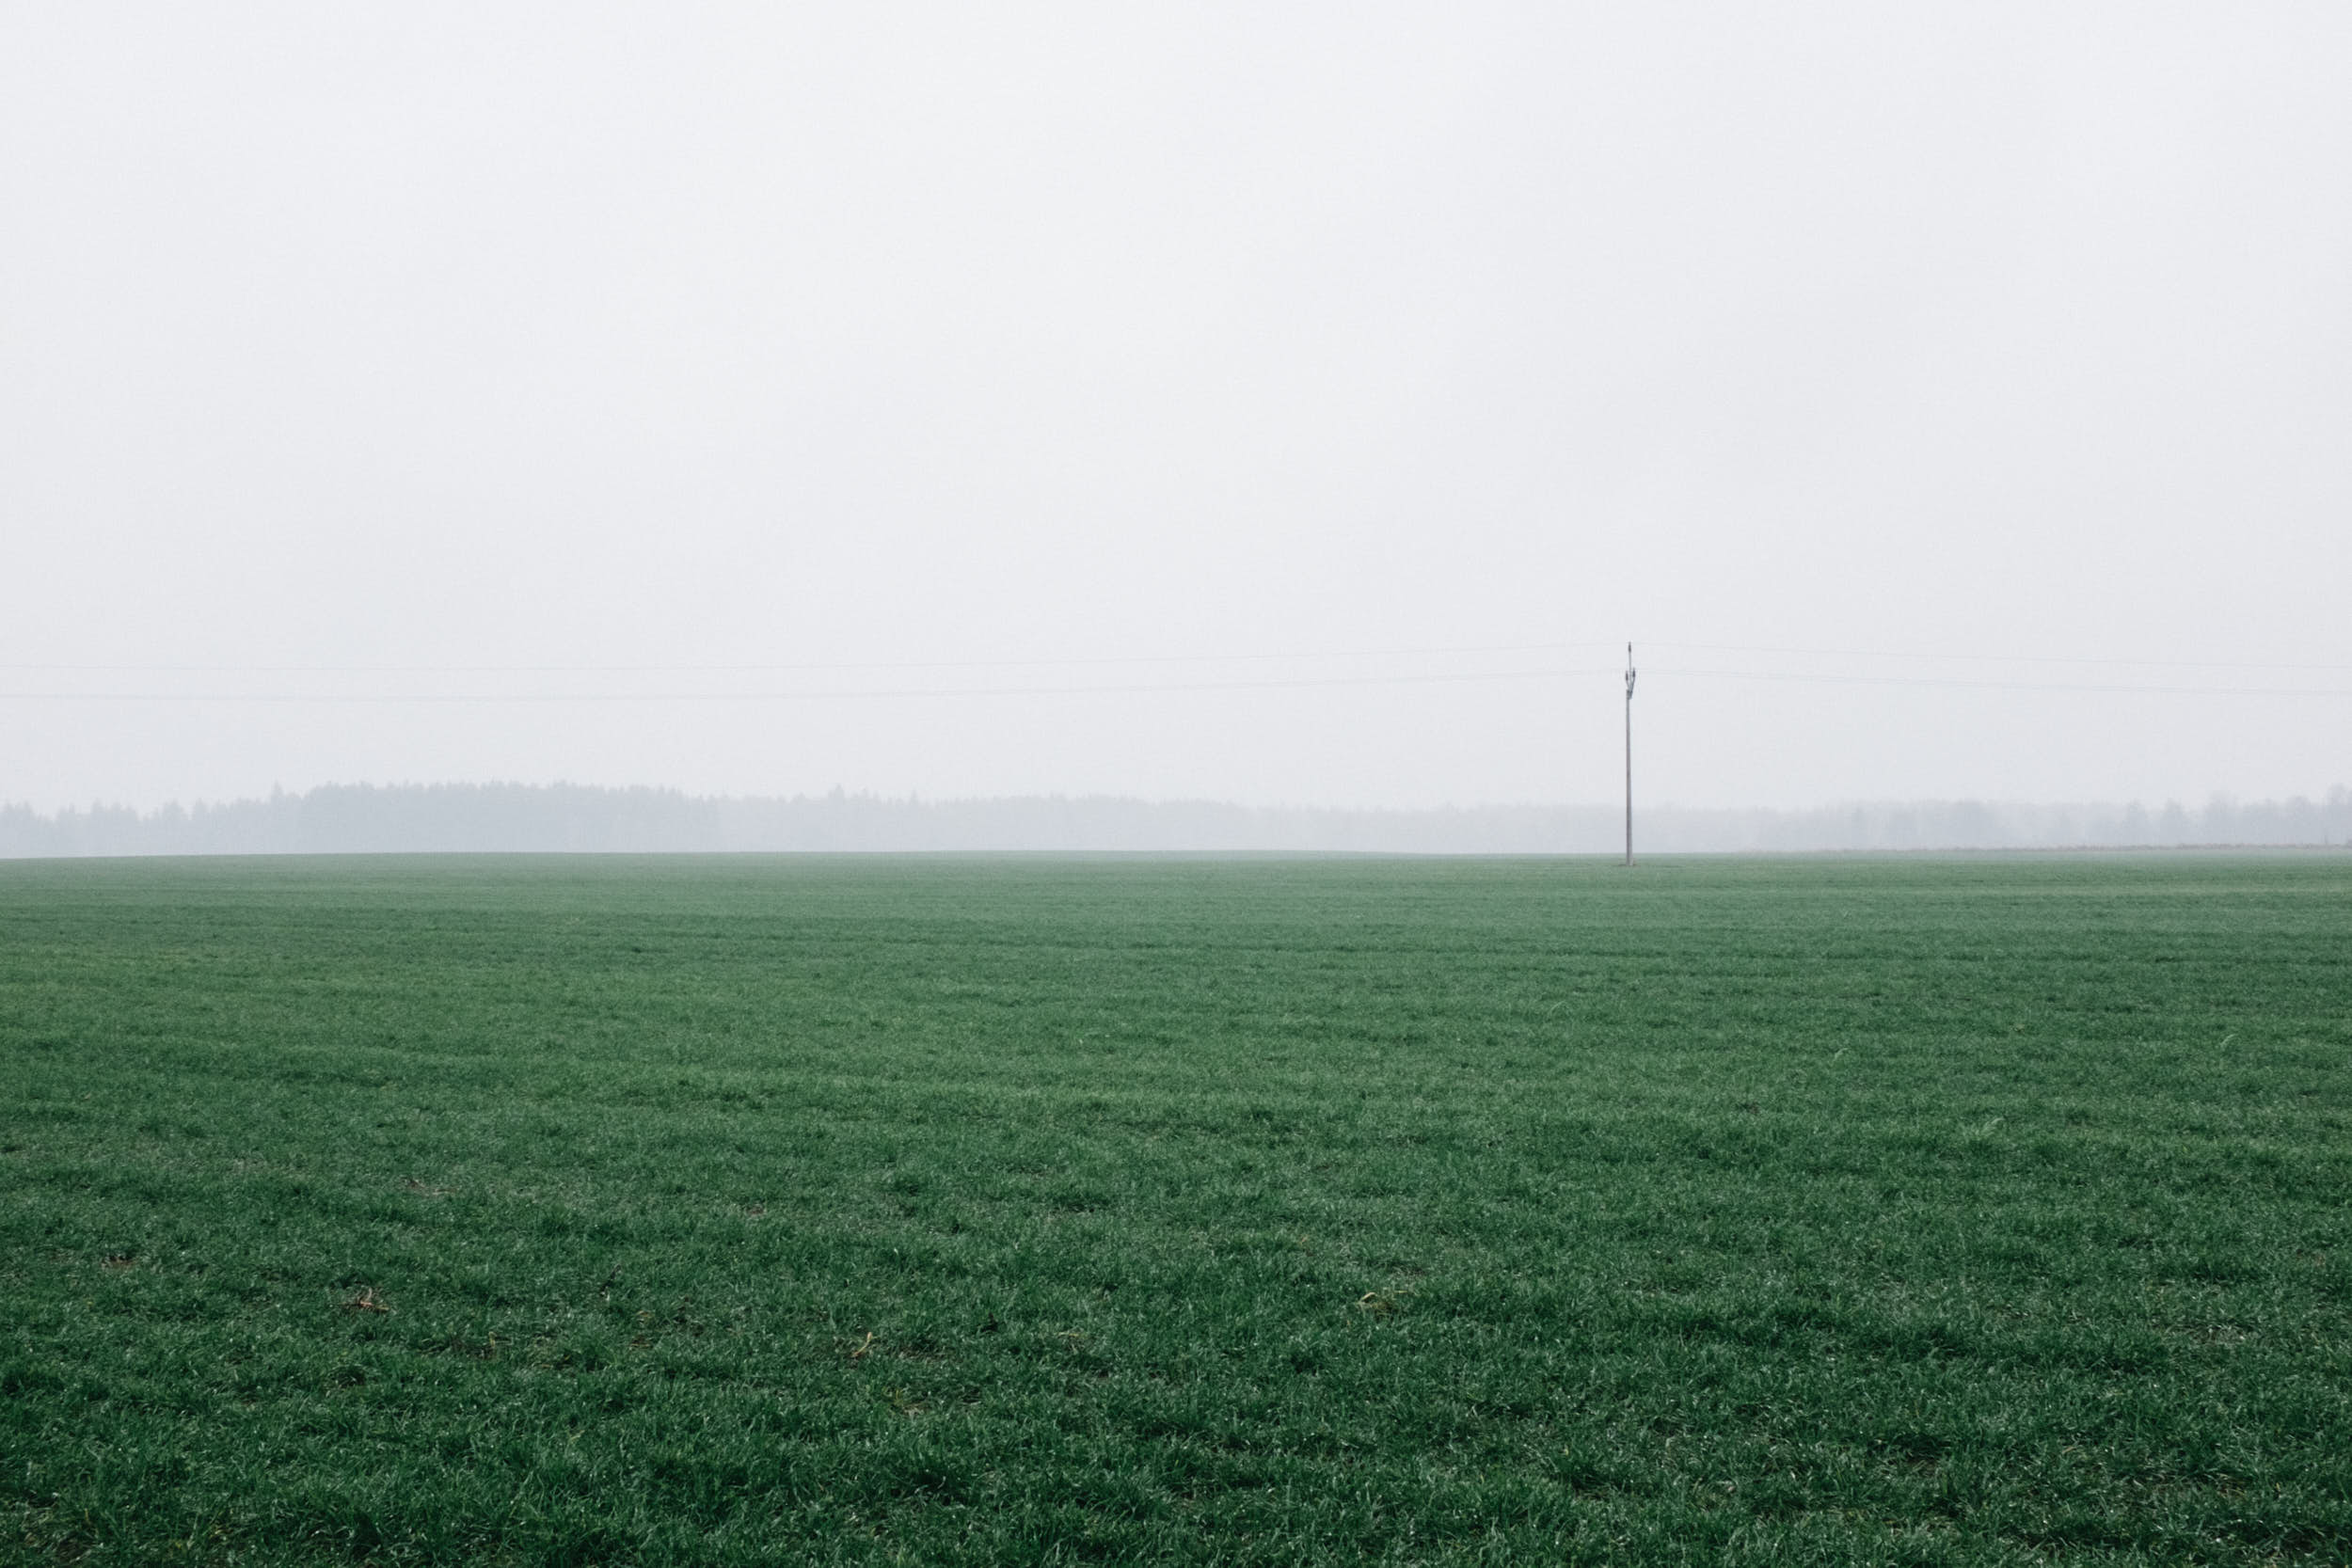 Minimalistic landscape photography of a misty field with electric wires running across the scene.